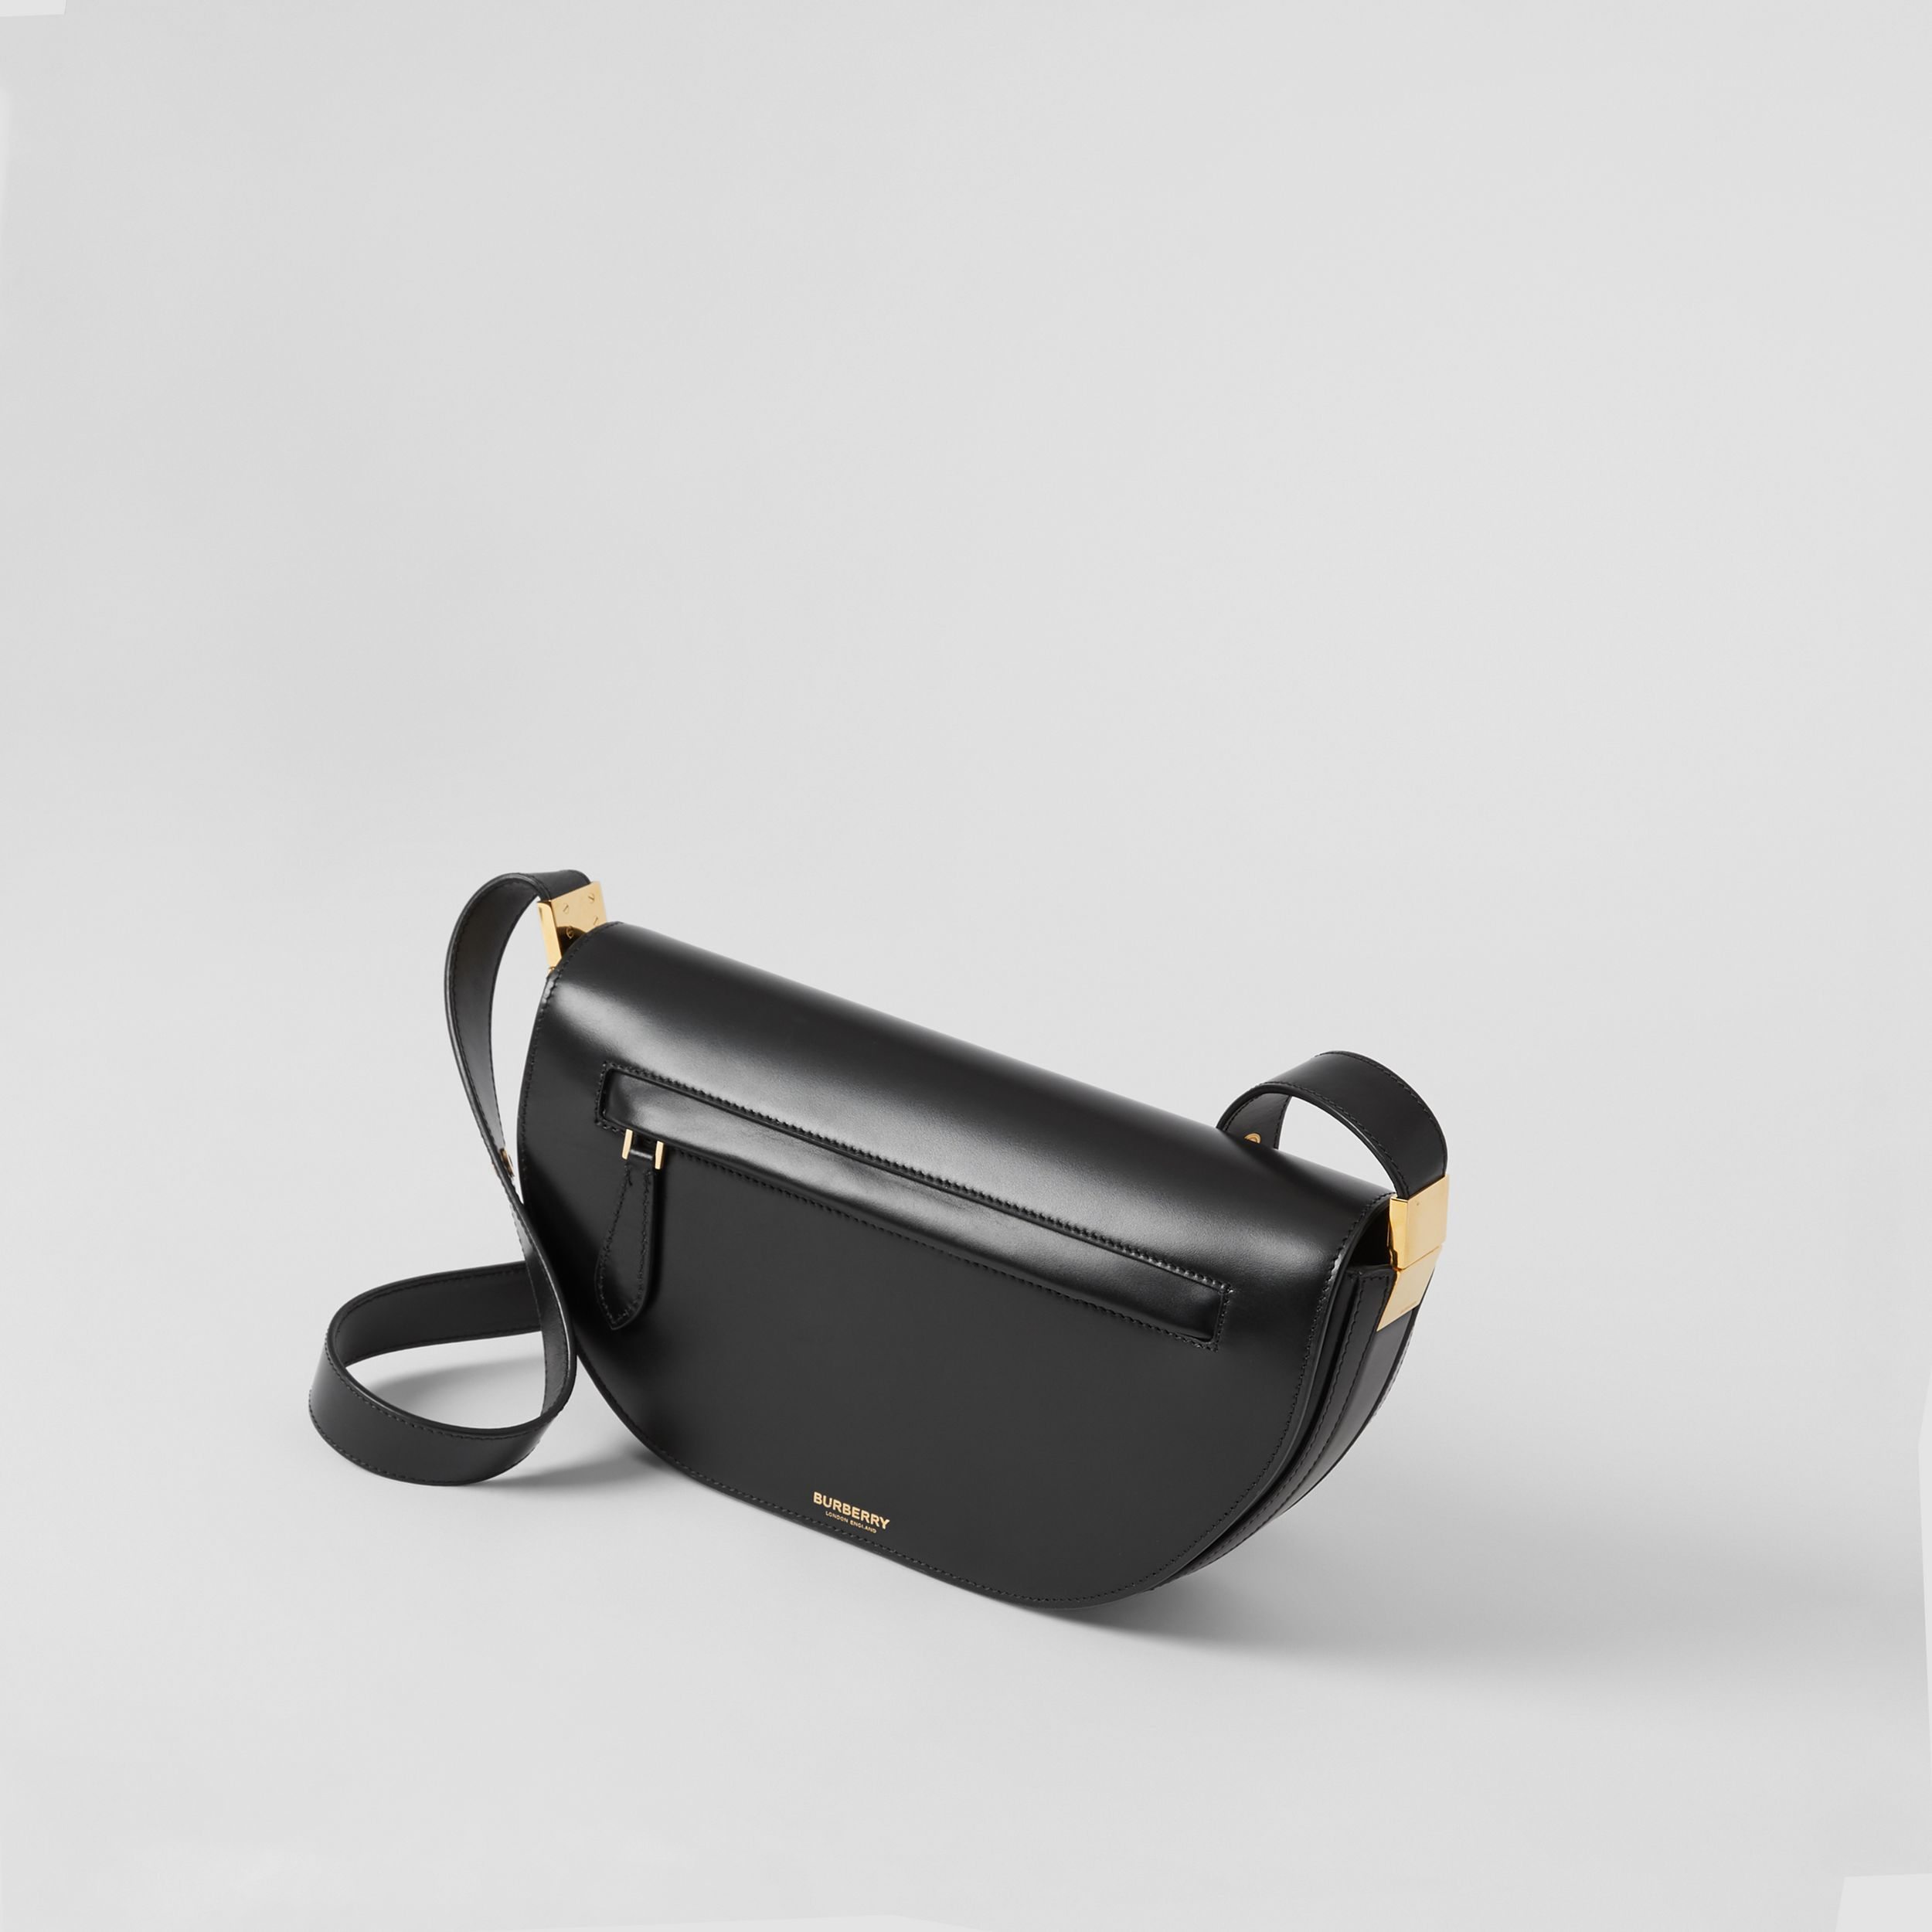 Small Leather Olympia Bag in Black - Women | Burberry - 4